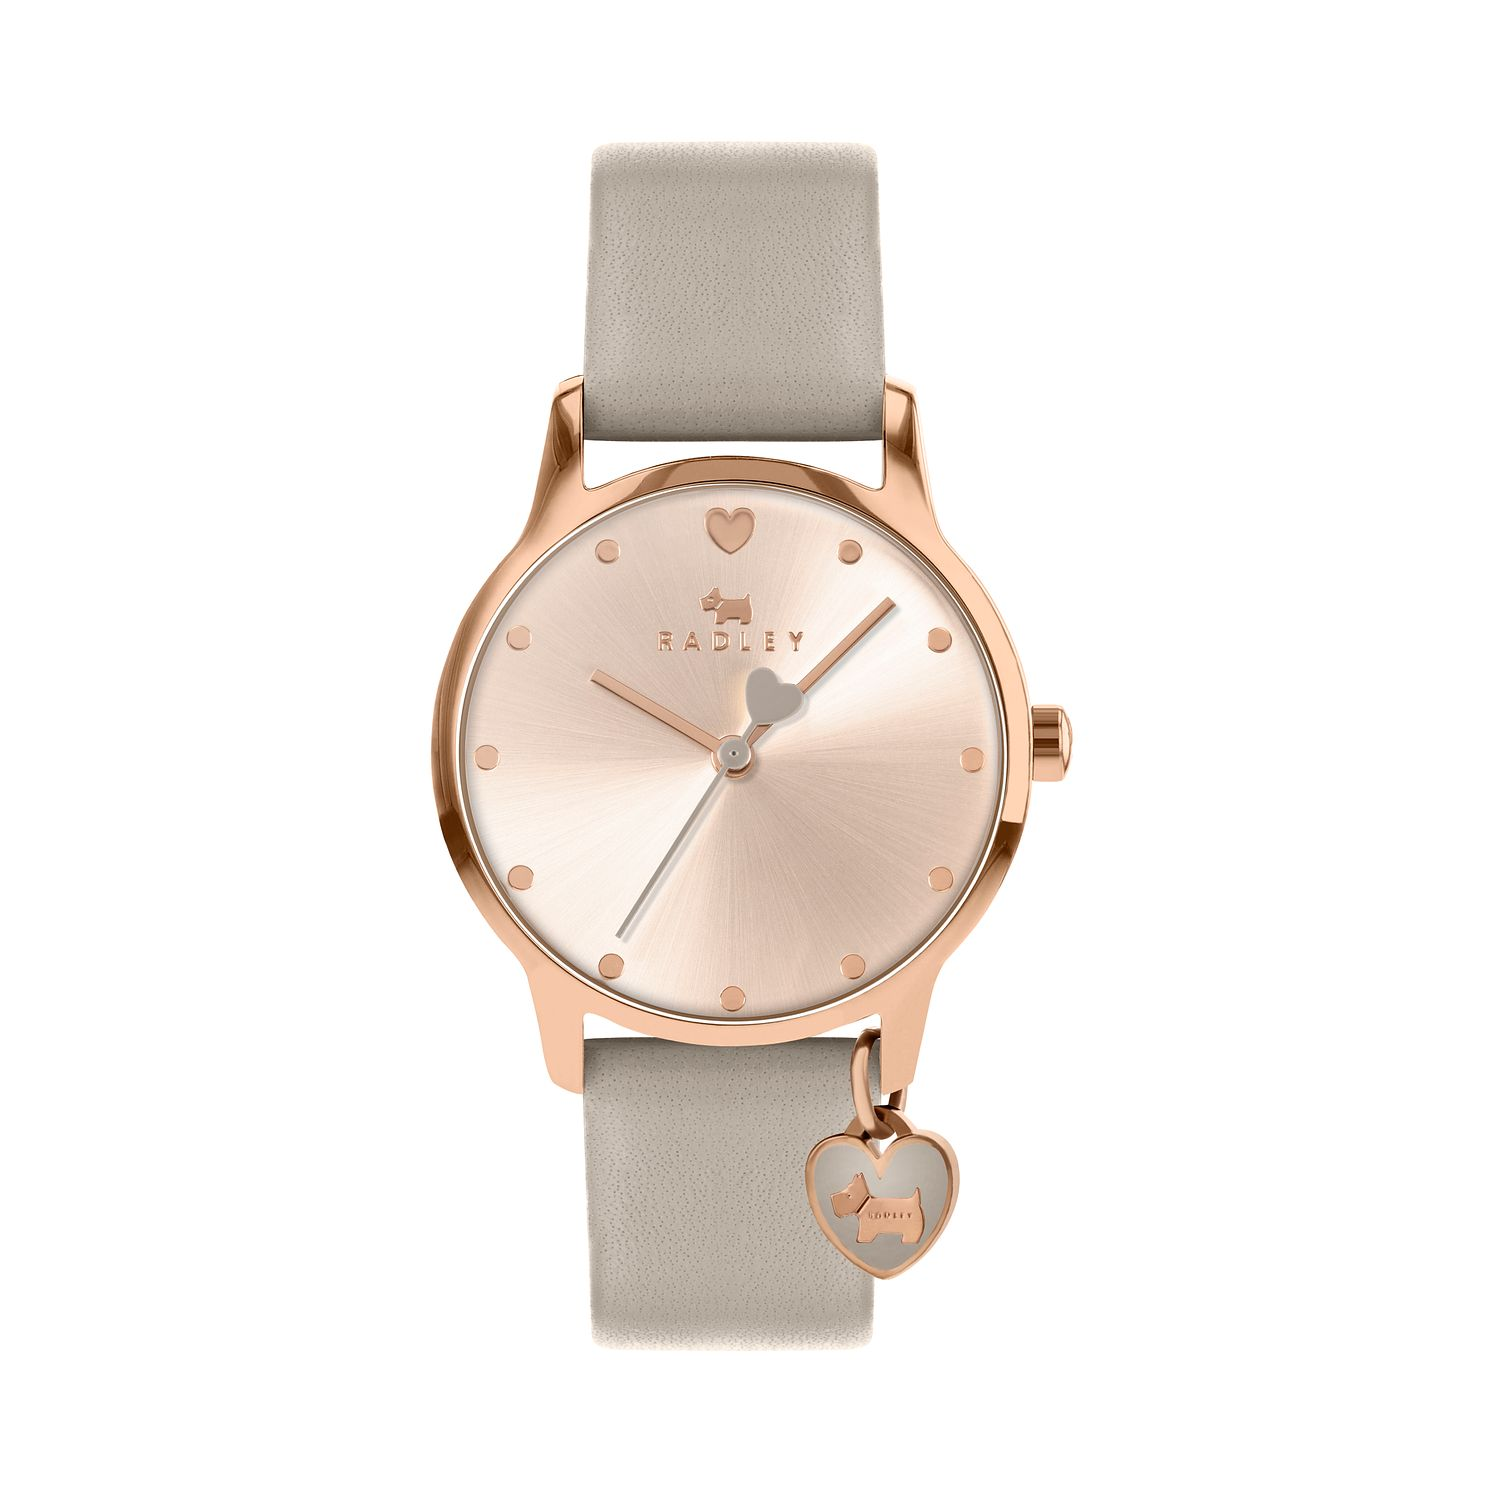 Radley London Ladies' Pink Leather Strap Watch - Product number 5086760